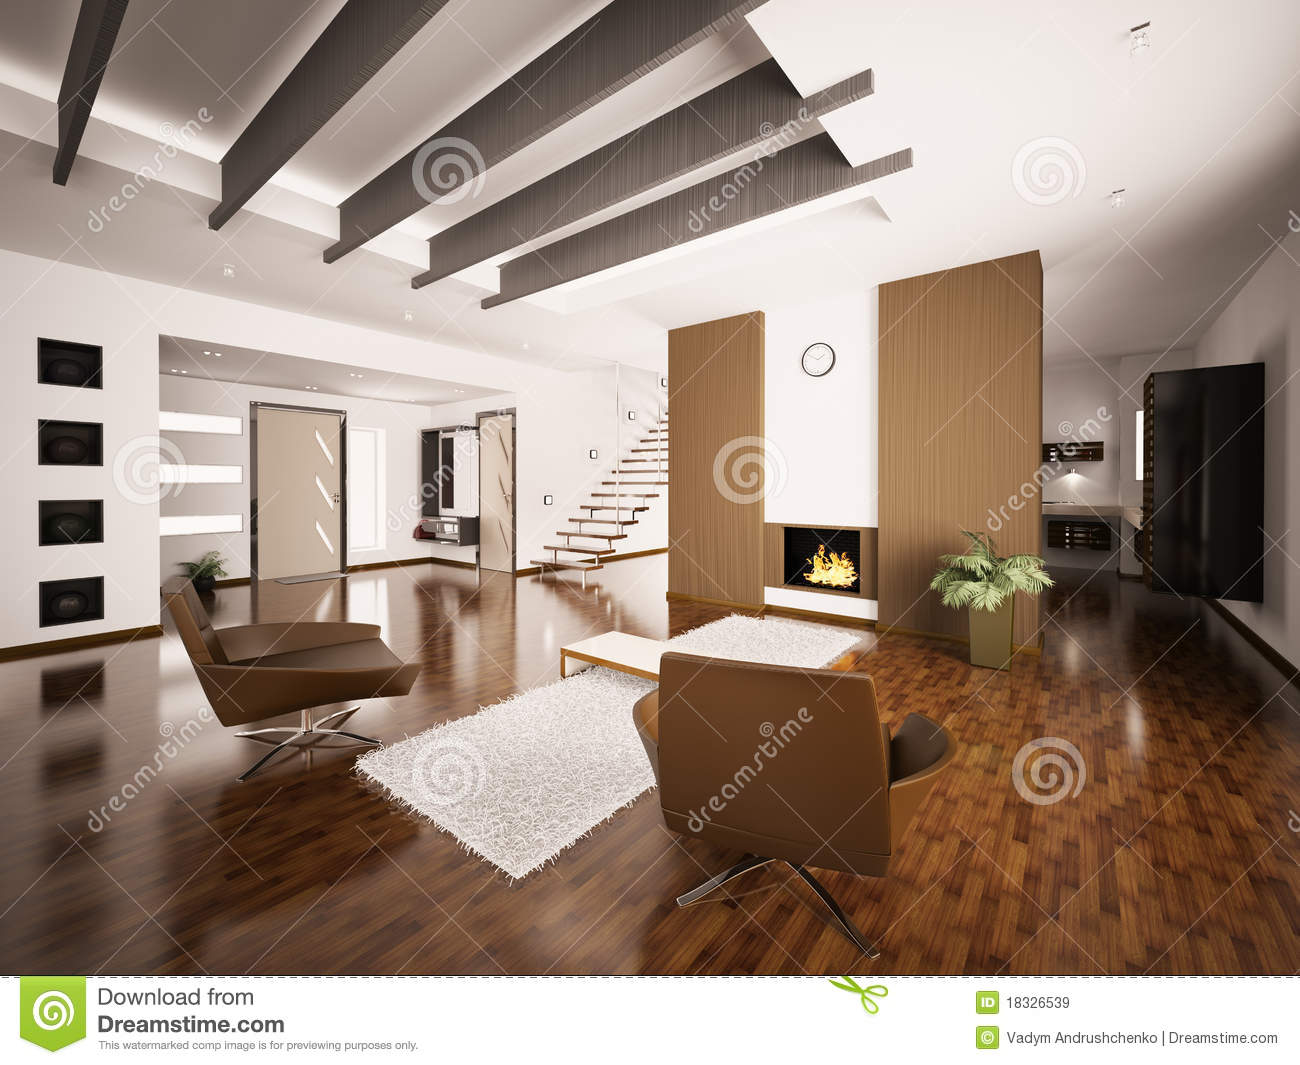 L 39 appartamento moderno 3d interno rende illustrazione di for Design moderno interni